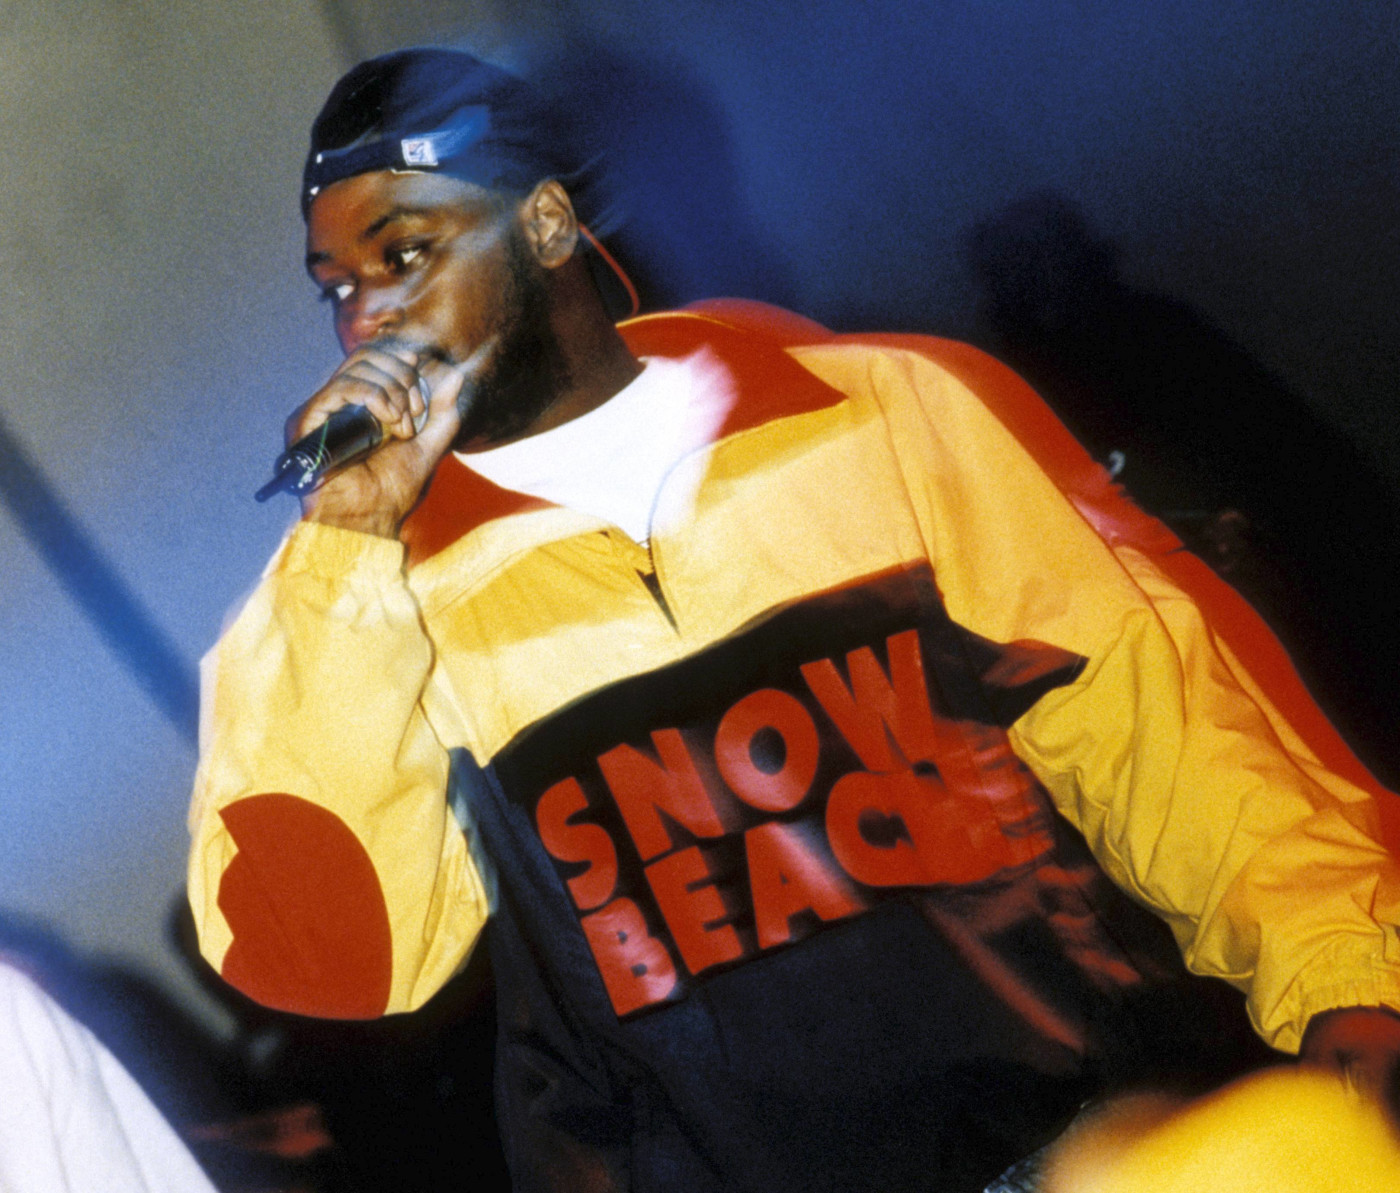 Ghostface Killah Of The Wu-Tang Clan Wearing A Snow Beach Jacket